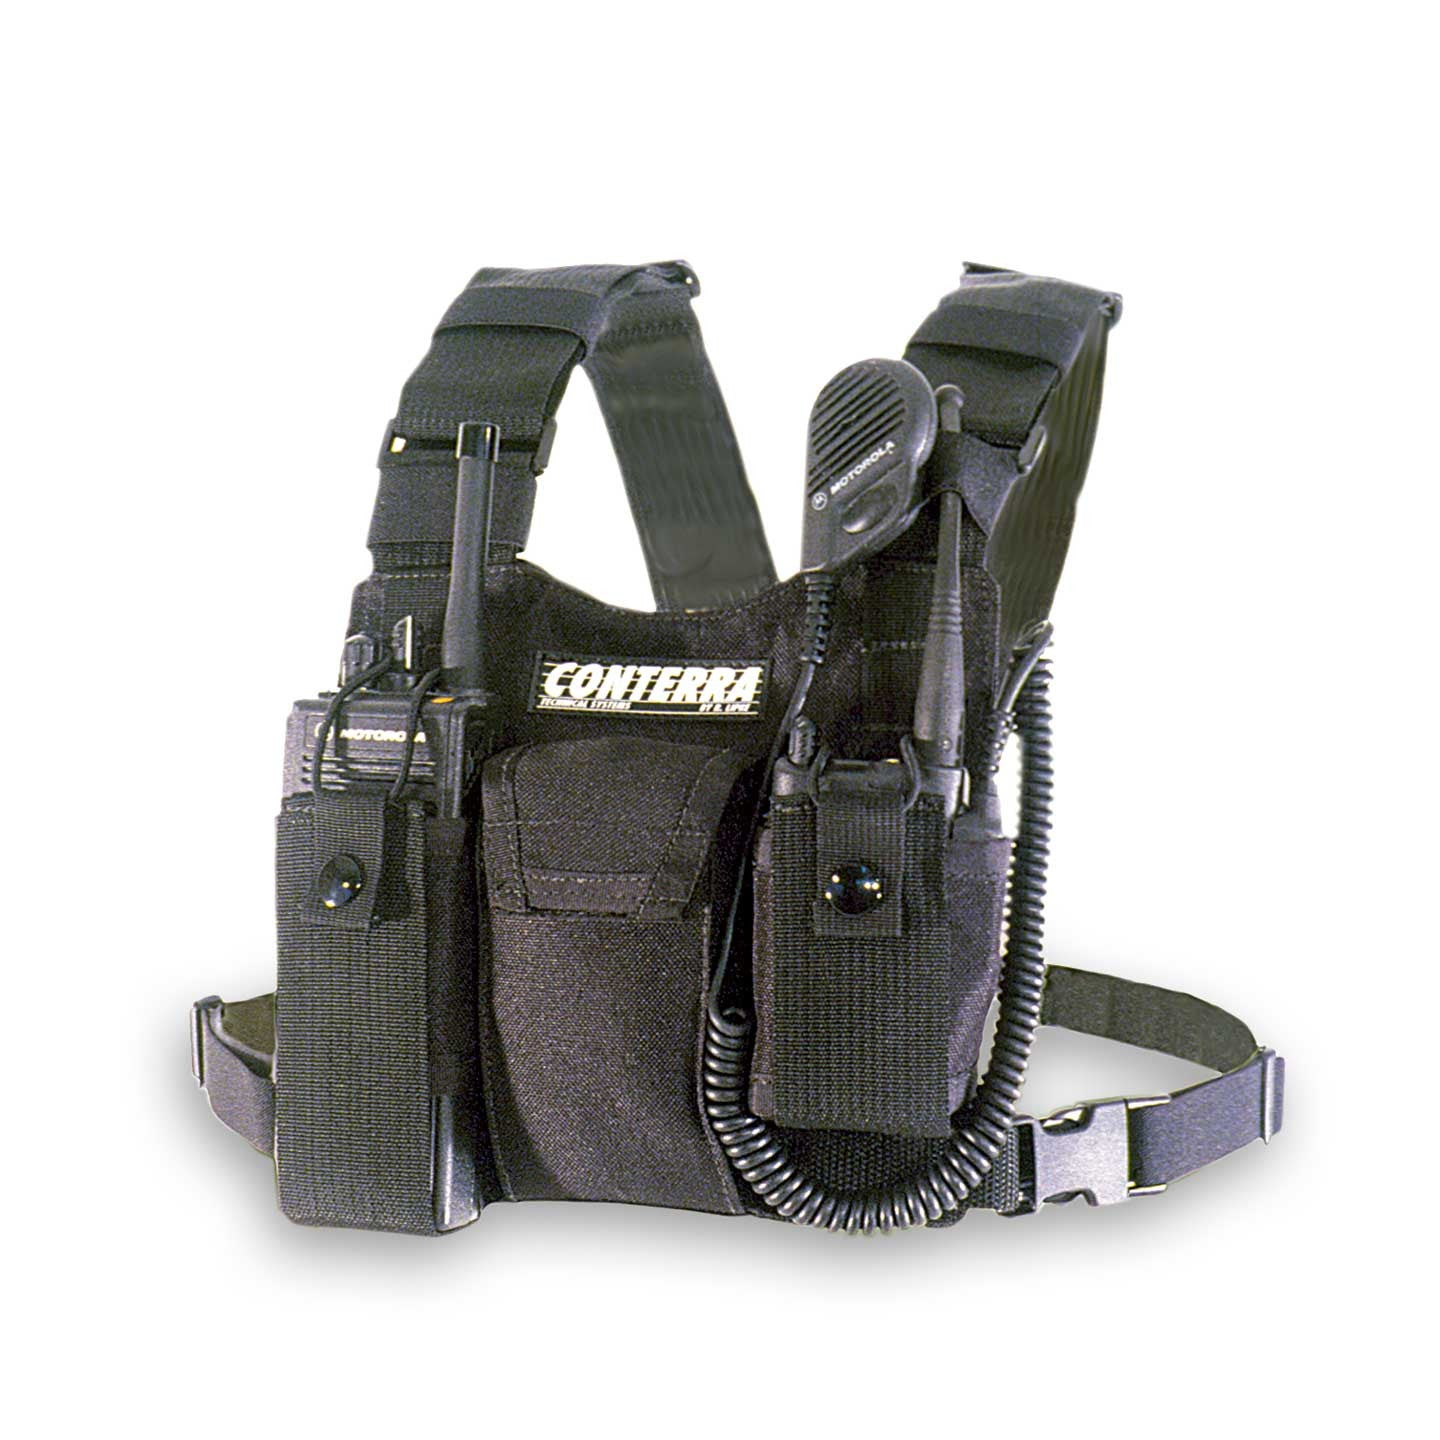 doubleradioharness?v=1424473790 double adjusta pro radio chest harness conterra inc radio harness at gsmx.co